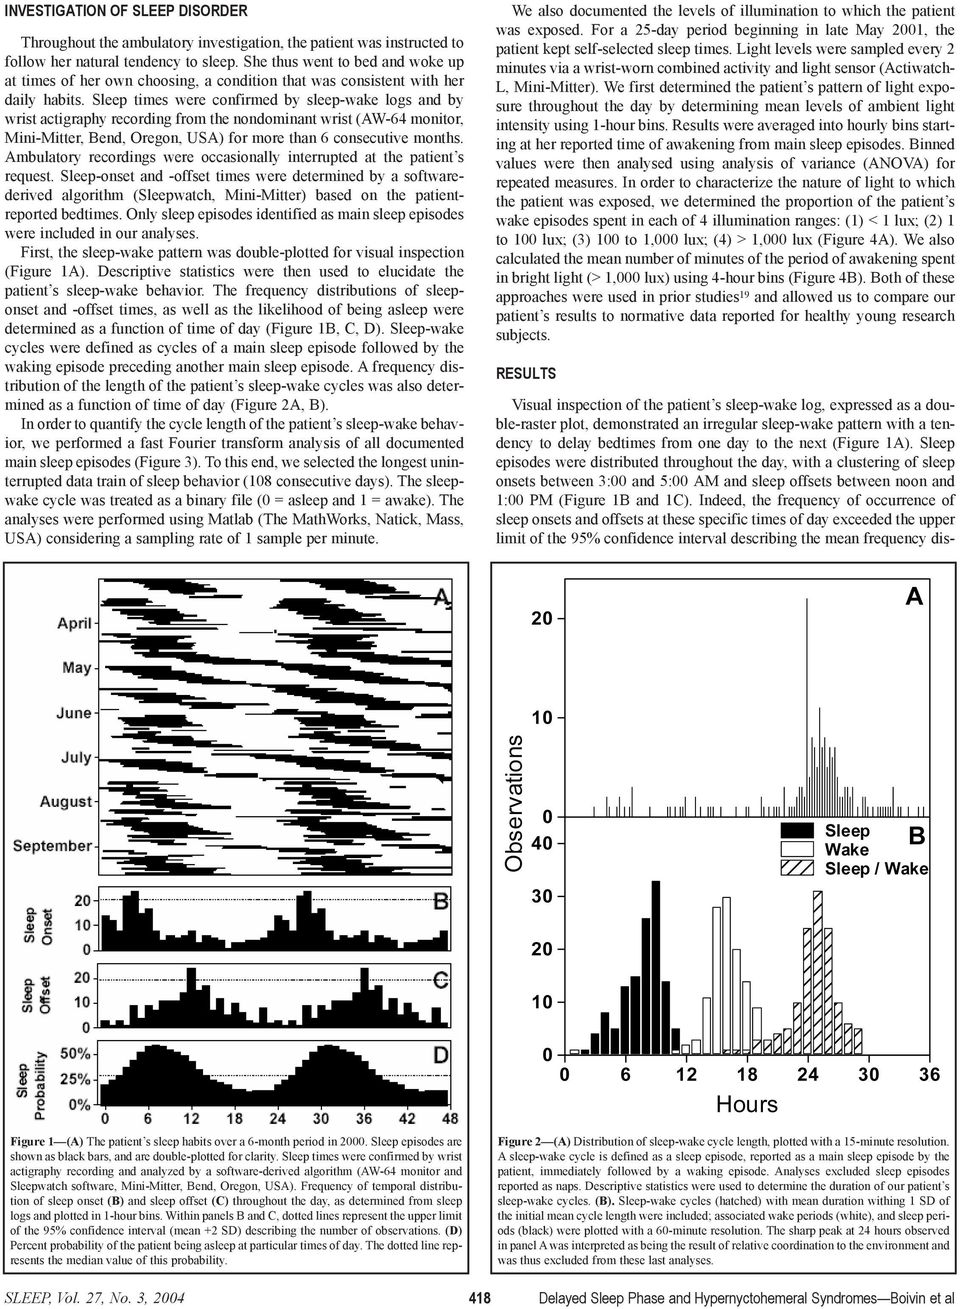 Sleep times were confirmed by sleep-wake logs and by wrist actigraphy recording from the nondominant wrist (AW-64 monitor, Mini-Mitter, Bend, Oregon, USA) for more than 6 consecutive months.